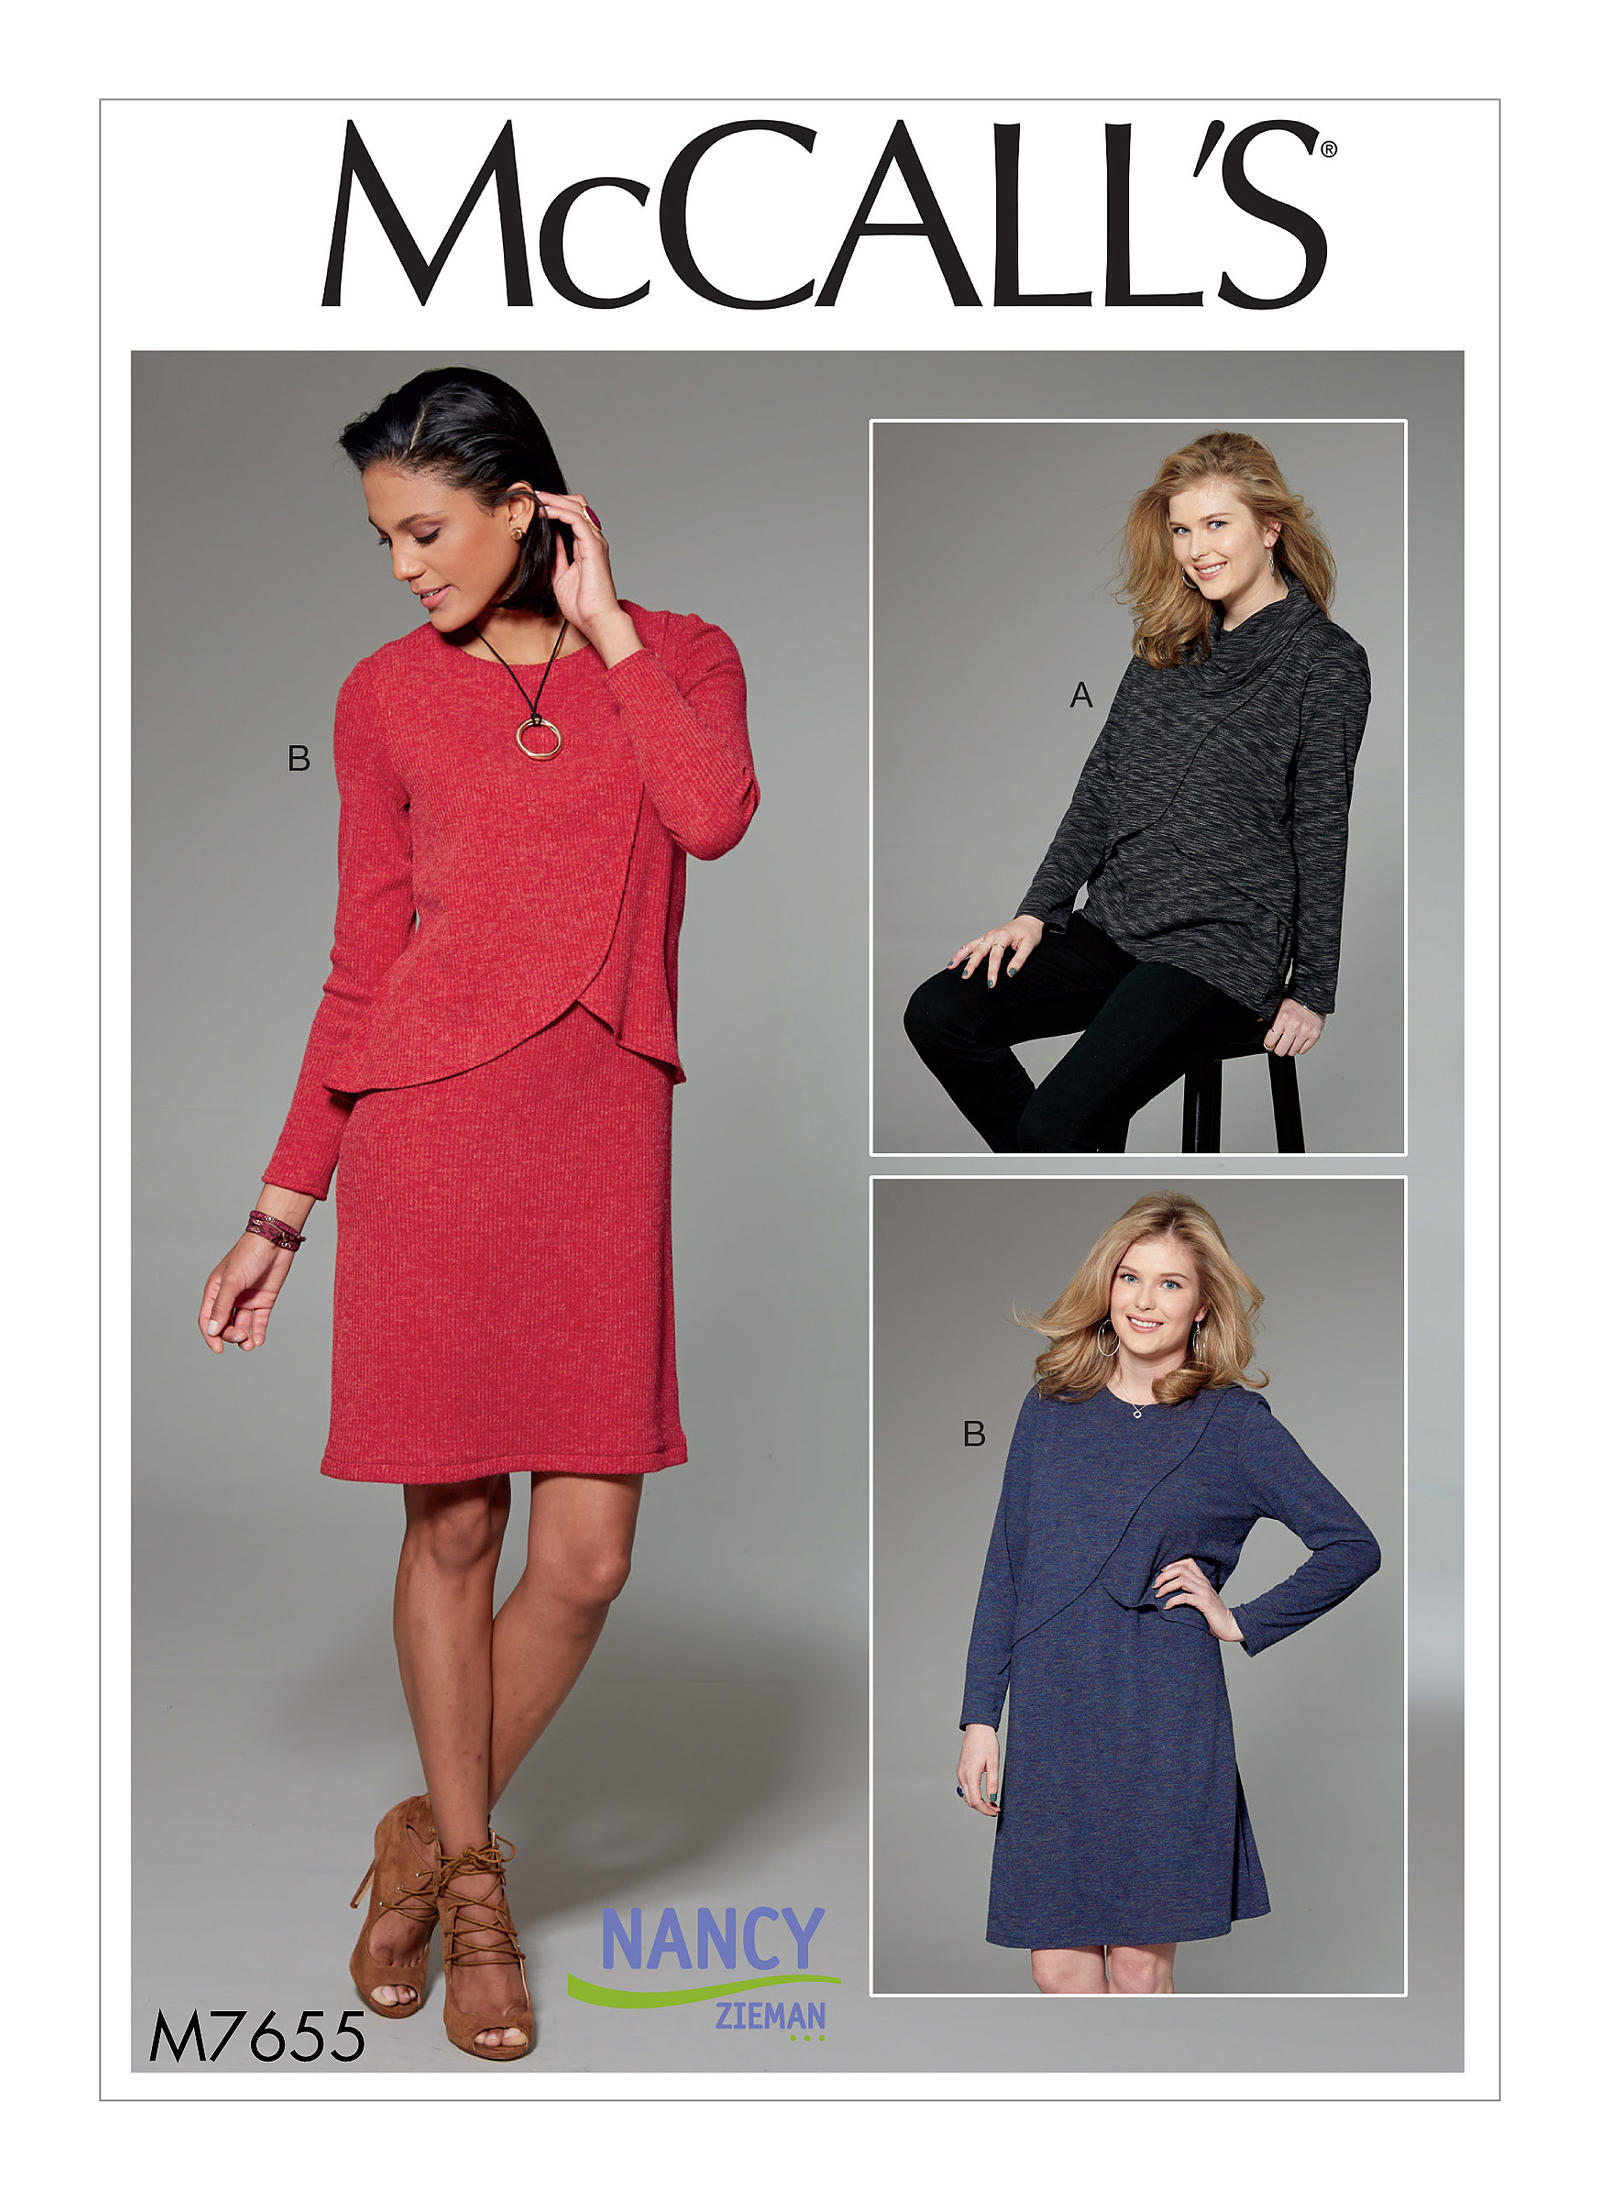 Knit Overlay Tunic Dress | McCall Pattern Company M7655 | by Nancy Zieman | Sewing With Nancy